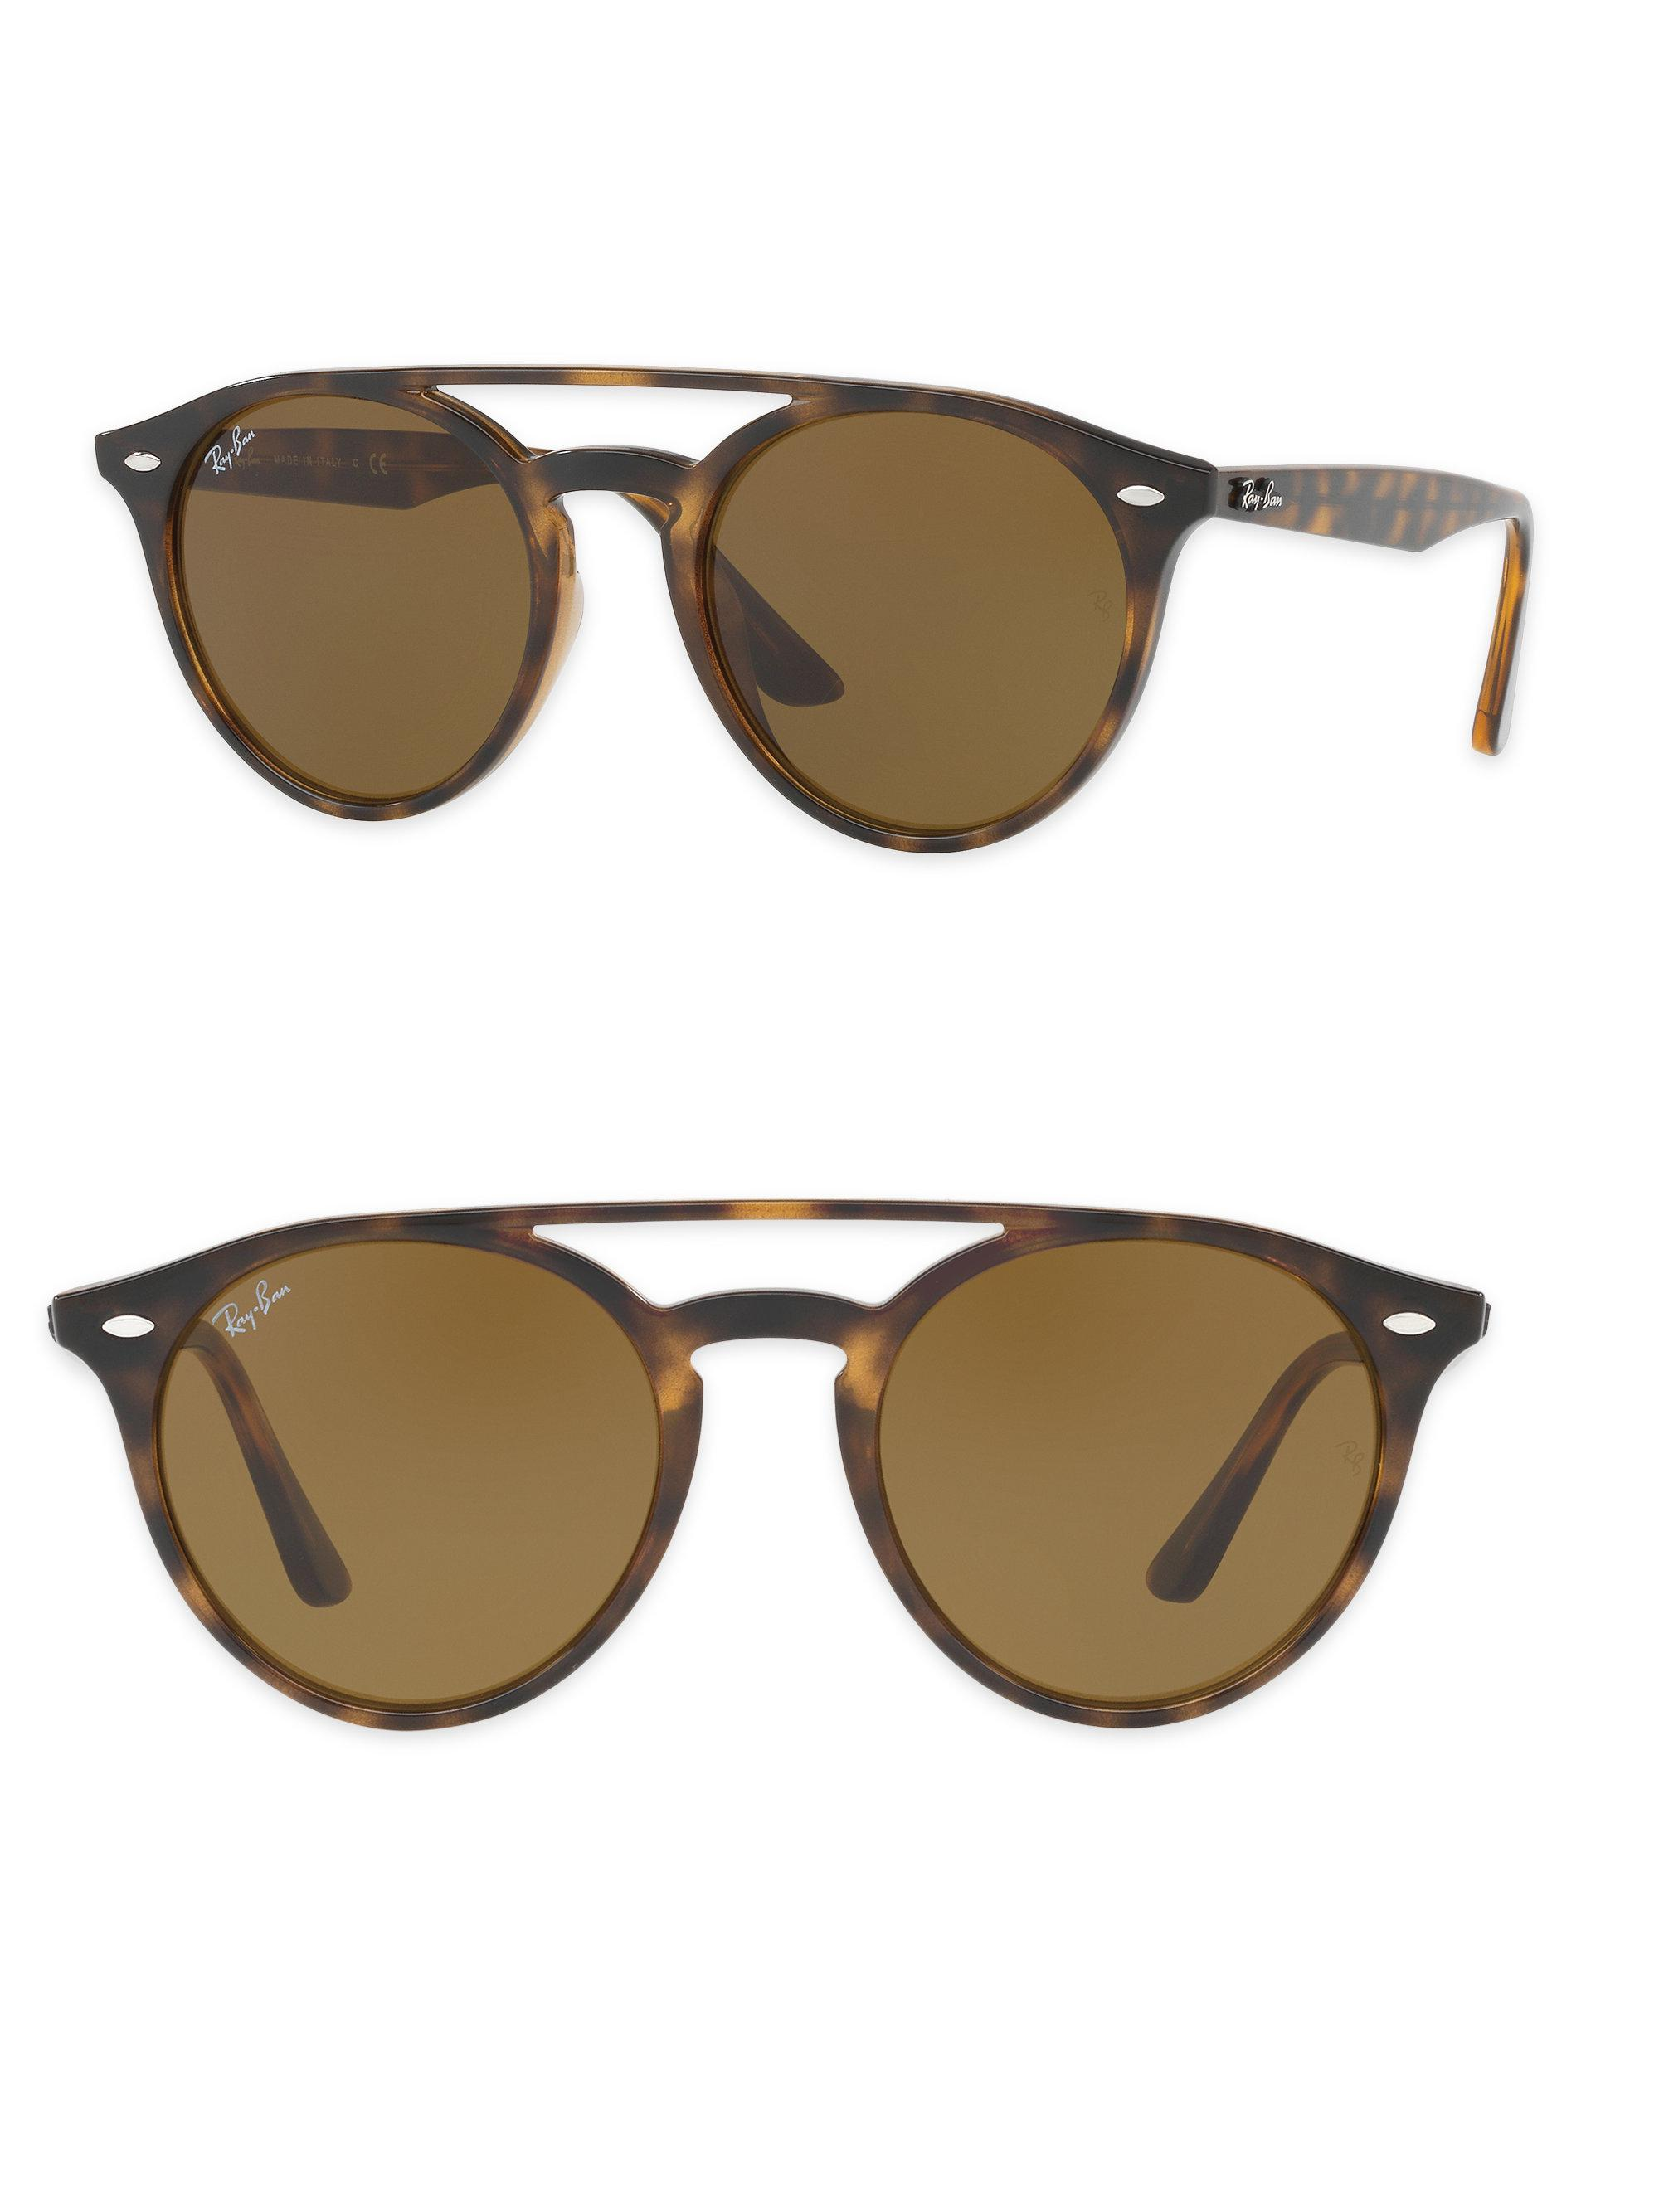 a16efec2a034 Ray-Ban 51mm Phantos Round Double-bridge Sunglasses in Brown - Lyst